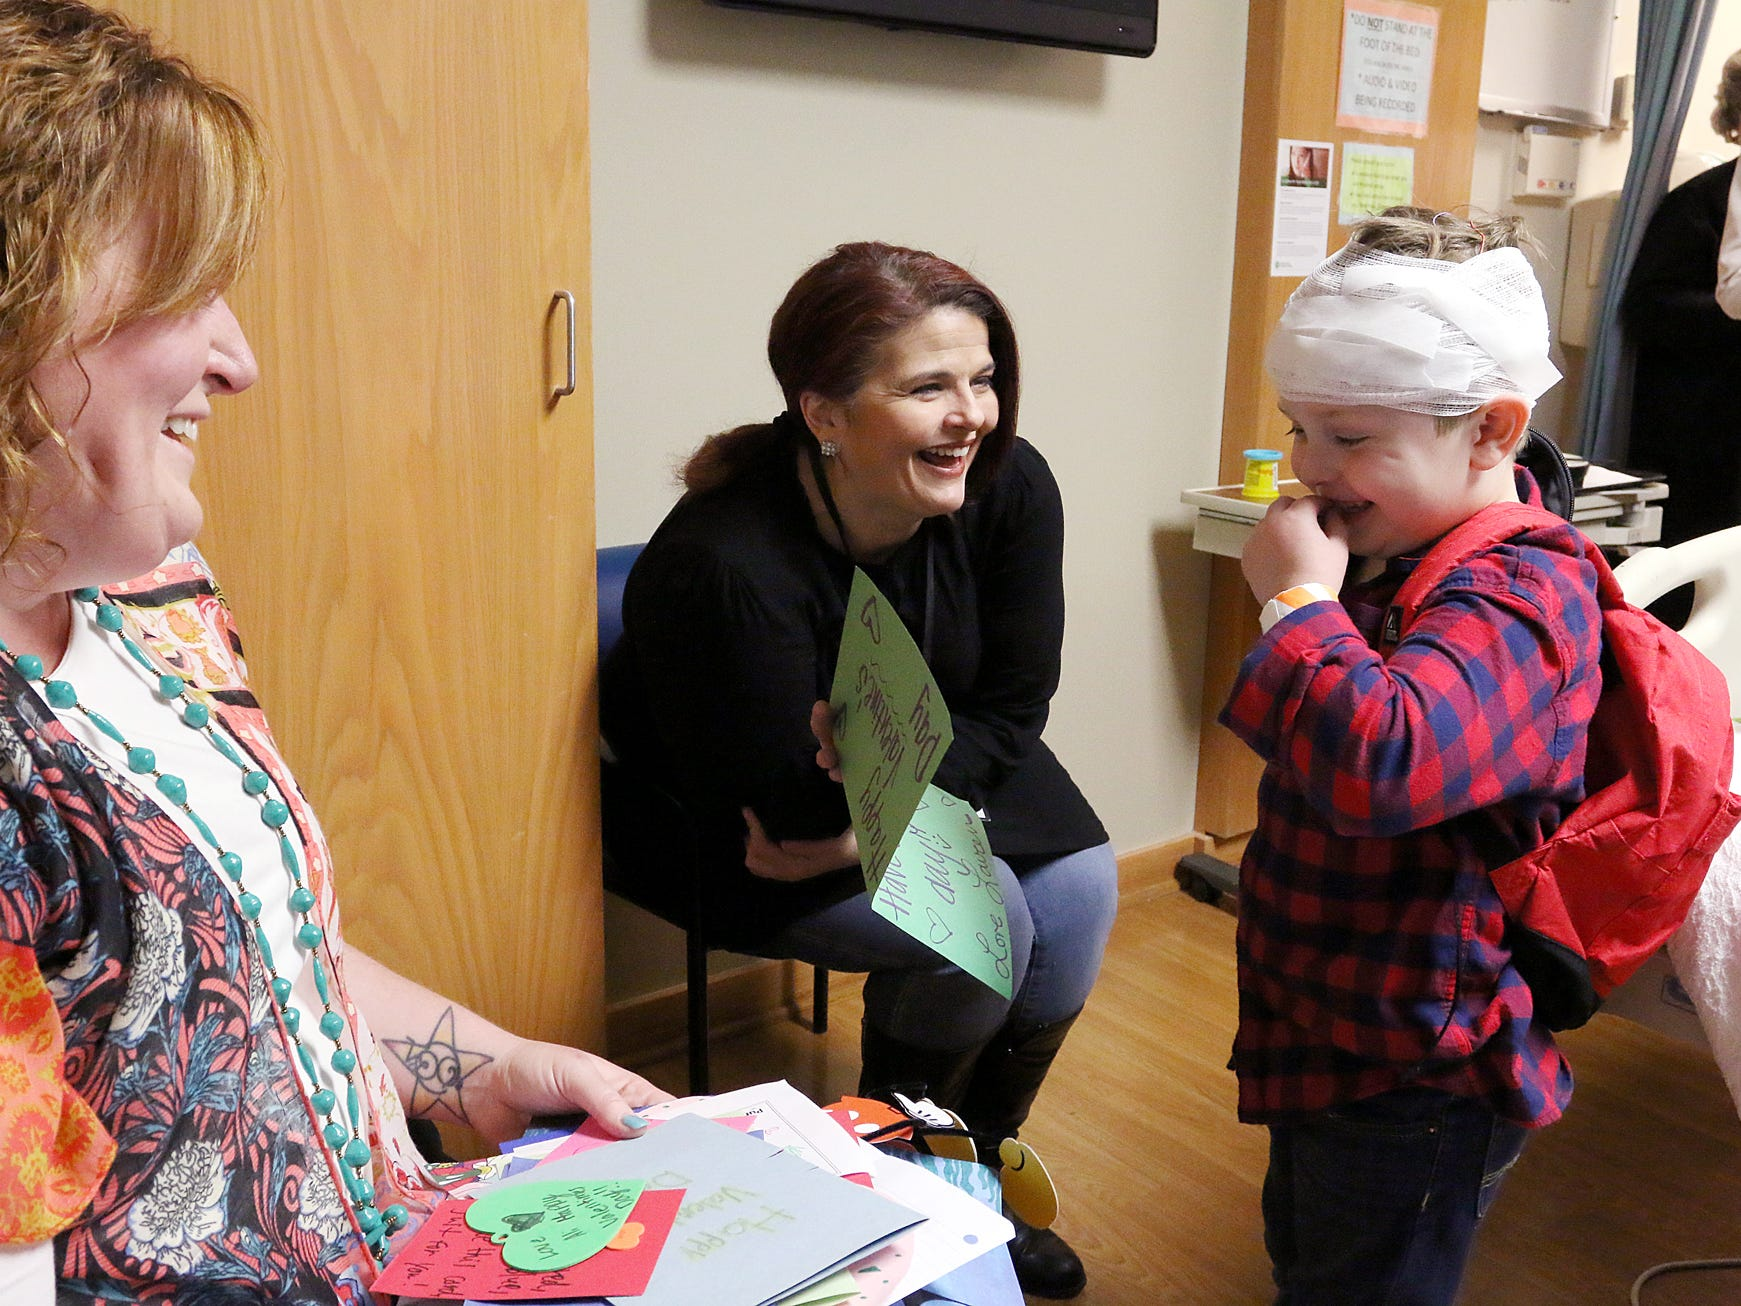 Sheri Taylor, middle, an on-air personality at Magic 98.9, laughs with Connor and his mother Amber Twomey while showing Connor Valentine's Day cards that were made for him and other children at the Prisma Health Children's Hospital Thursday morning, February 14, 2019.